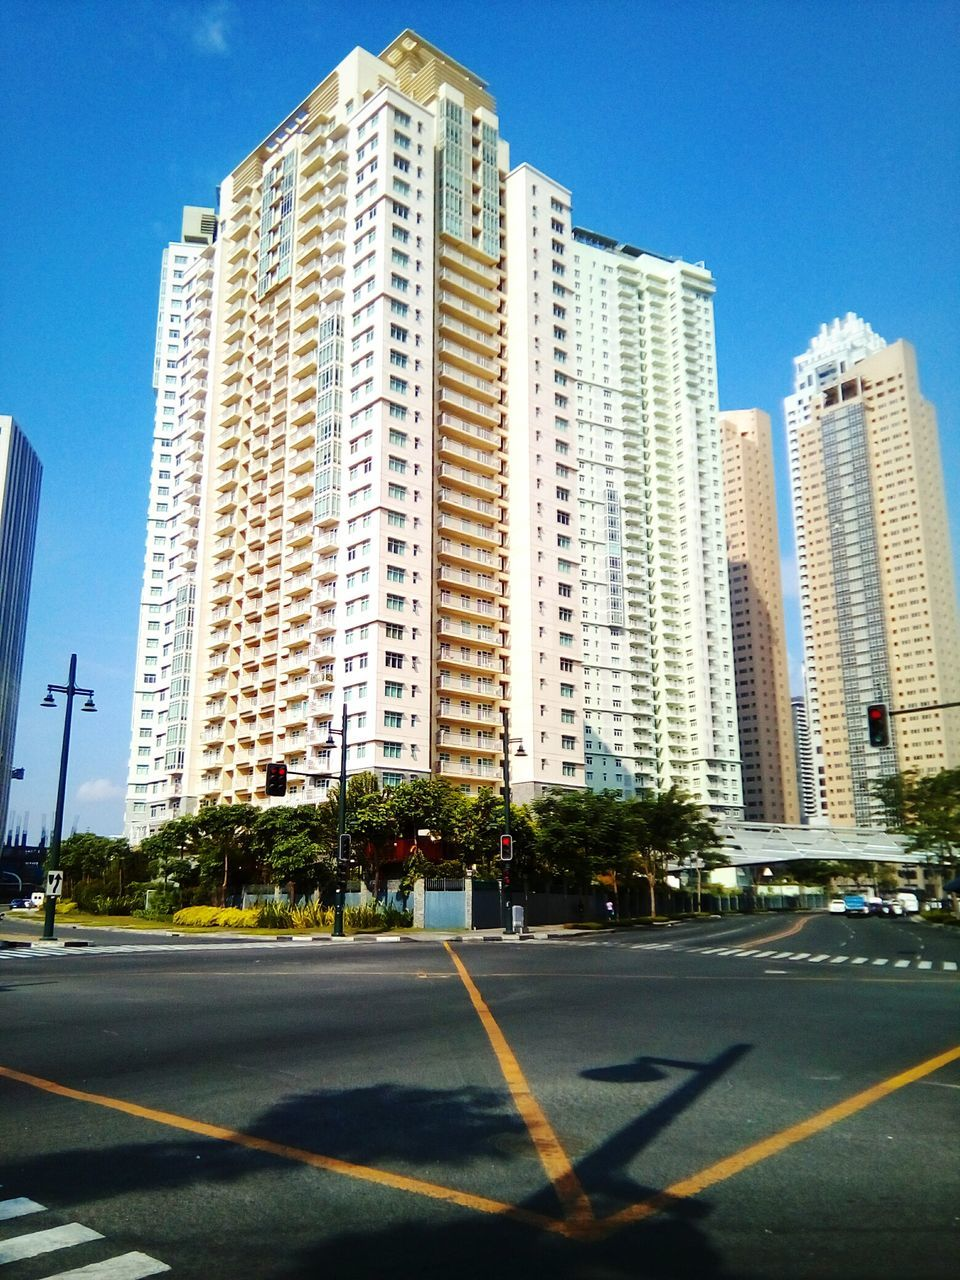 architecture, road, built structure, building exterior, city, skyscraper, street, transportation, day, car, outdoors, tree, clear sky, sky, growth, no people, modern, cityscape